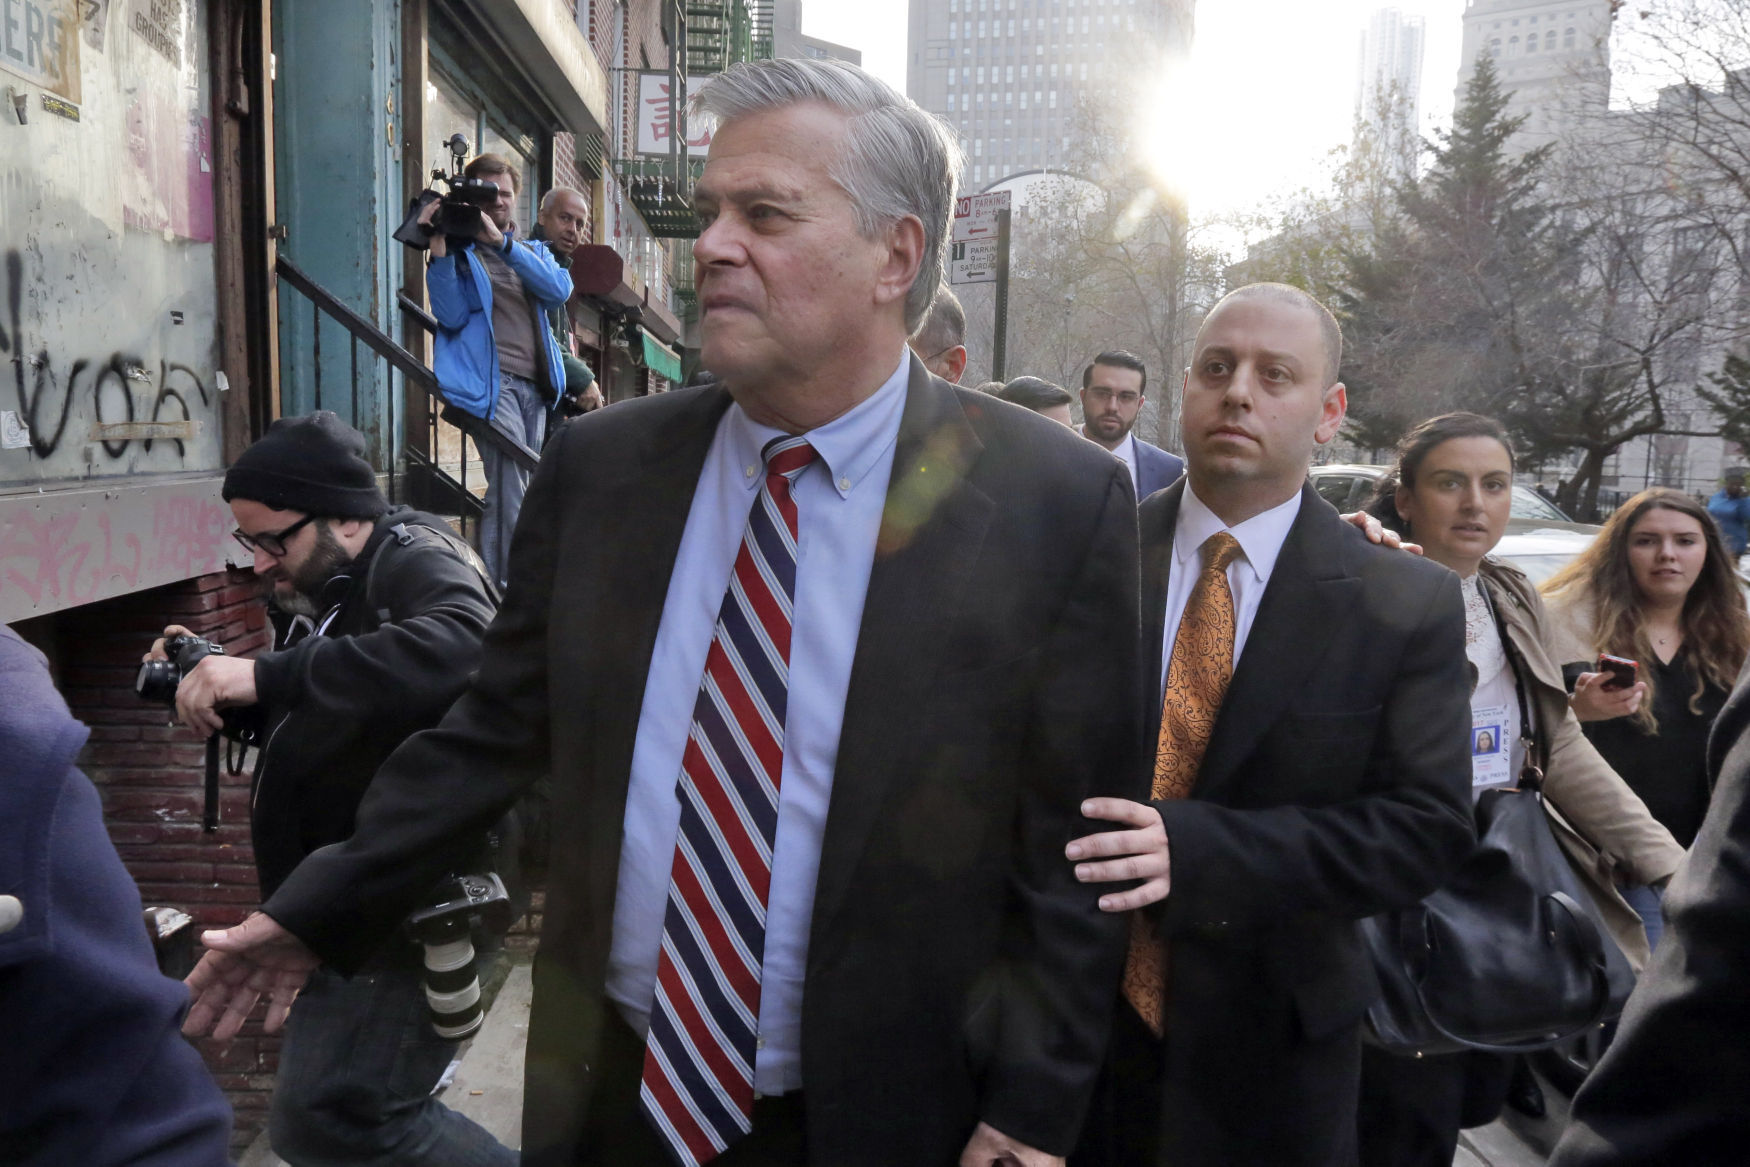 Dean Skelos's 2015 Corruption Conviction Is Overturned